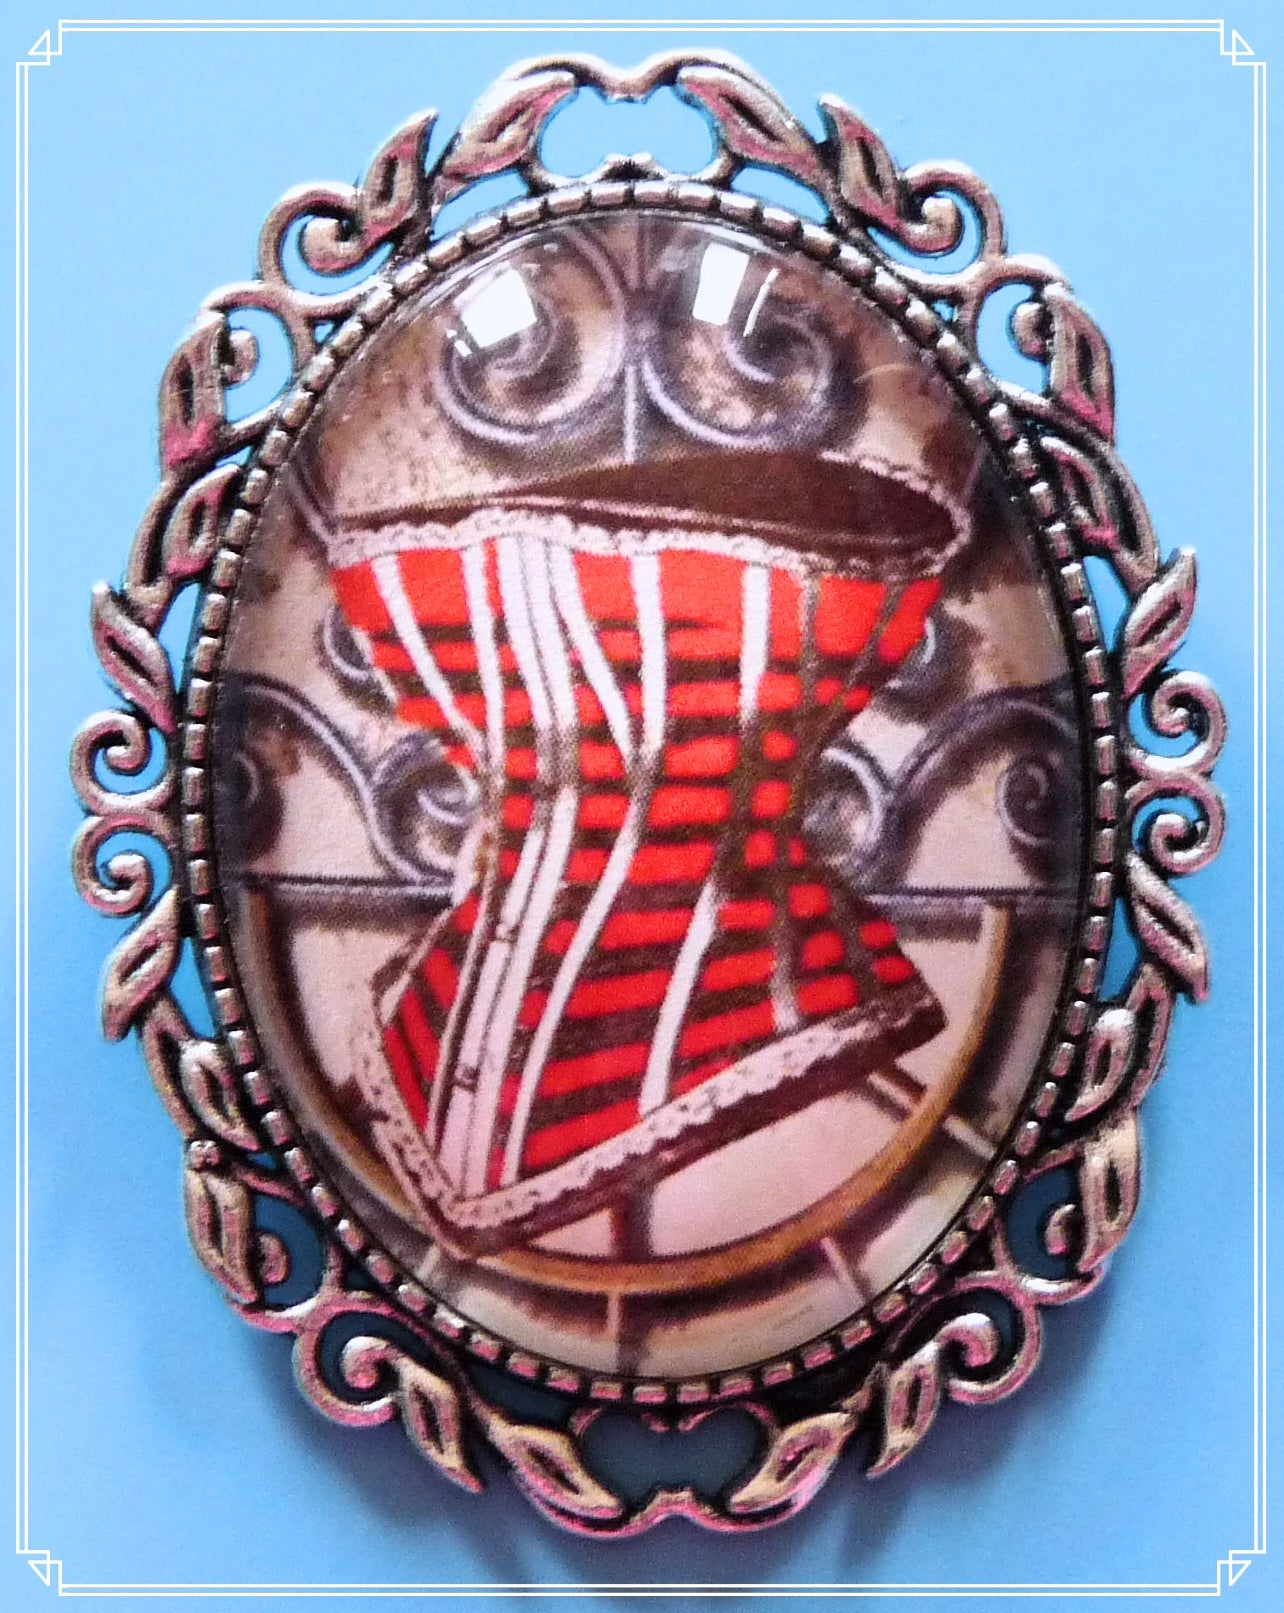 The Corset on Metal brooch is part of my Steampunk collection.